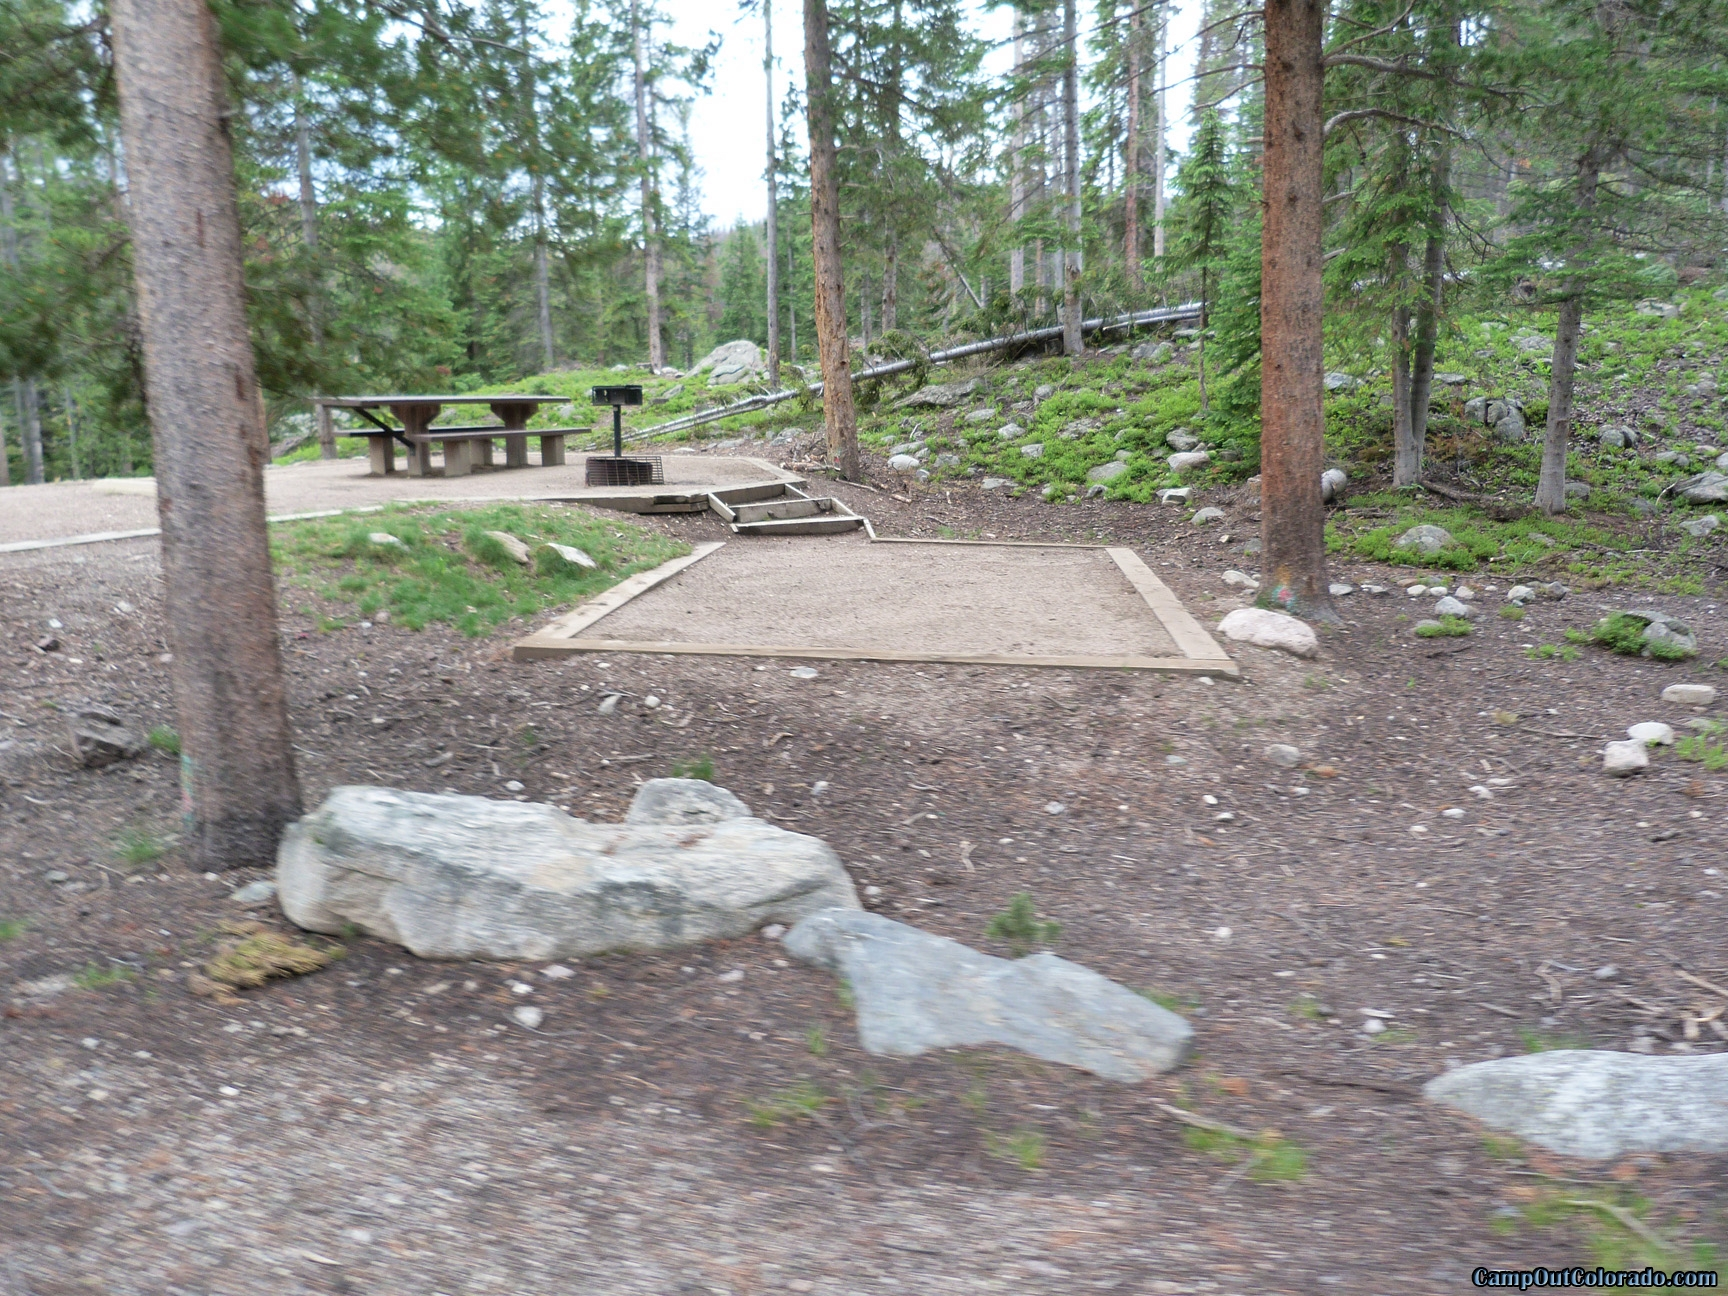 camp-out-colorado-chambers-lake-campground-tent-pads